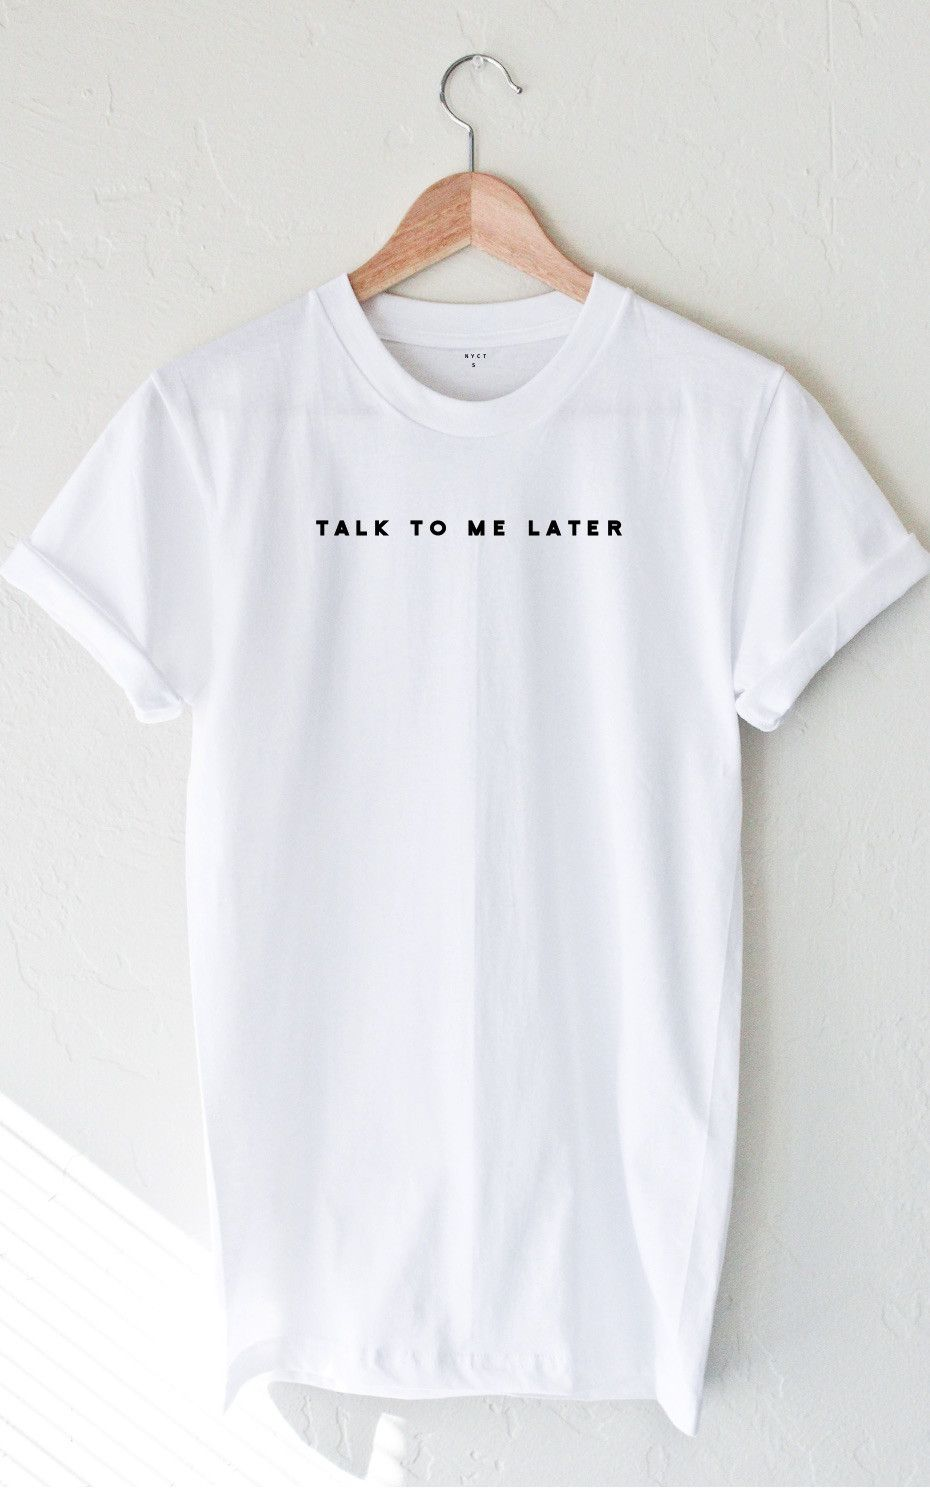 Design your own t shirt made in usa - Talk To Me Later T Shirt White